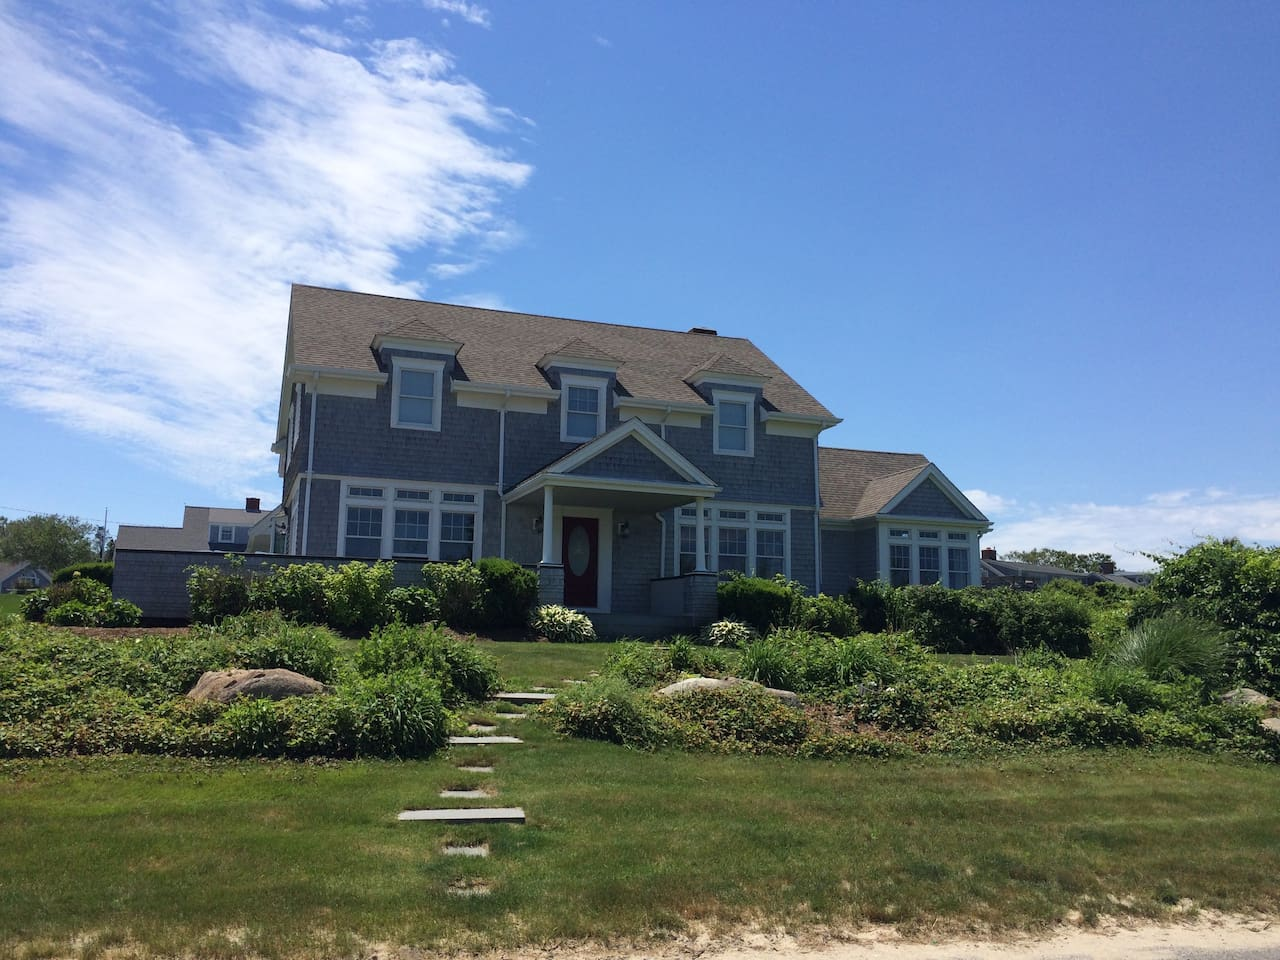 Front of the house faces Cape Cod Bay